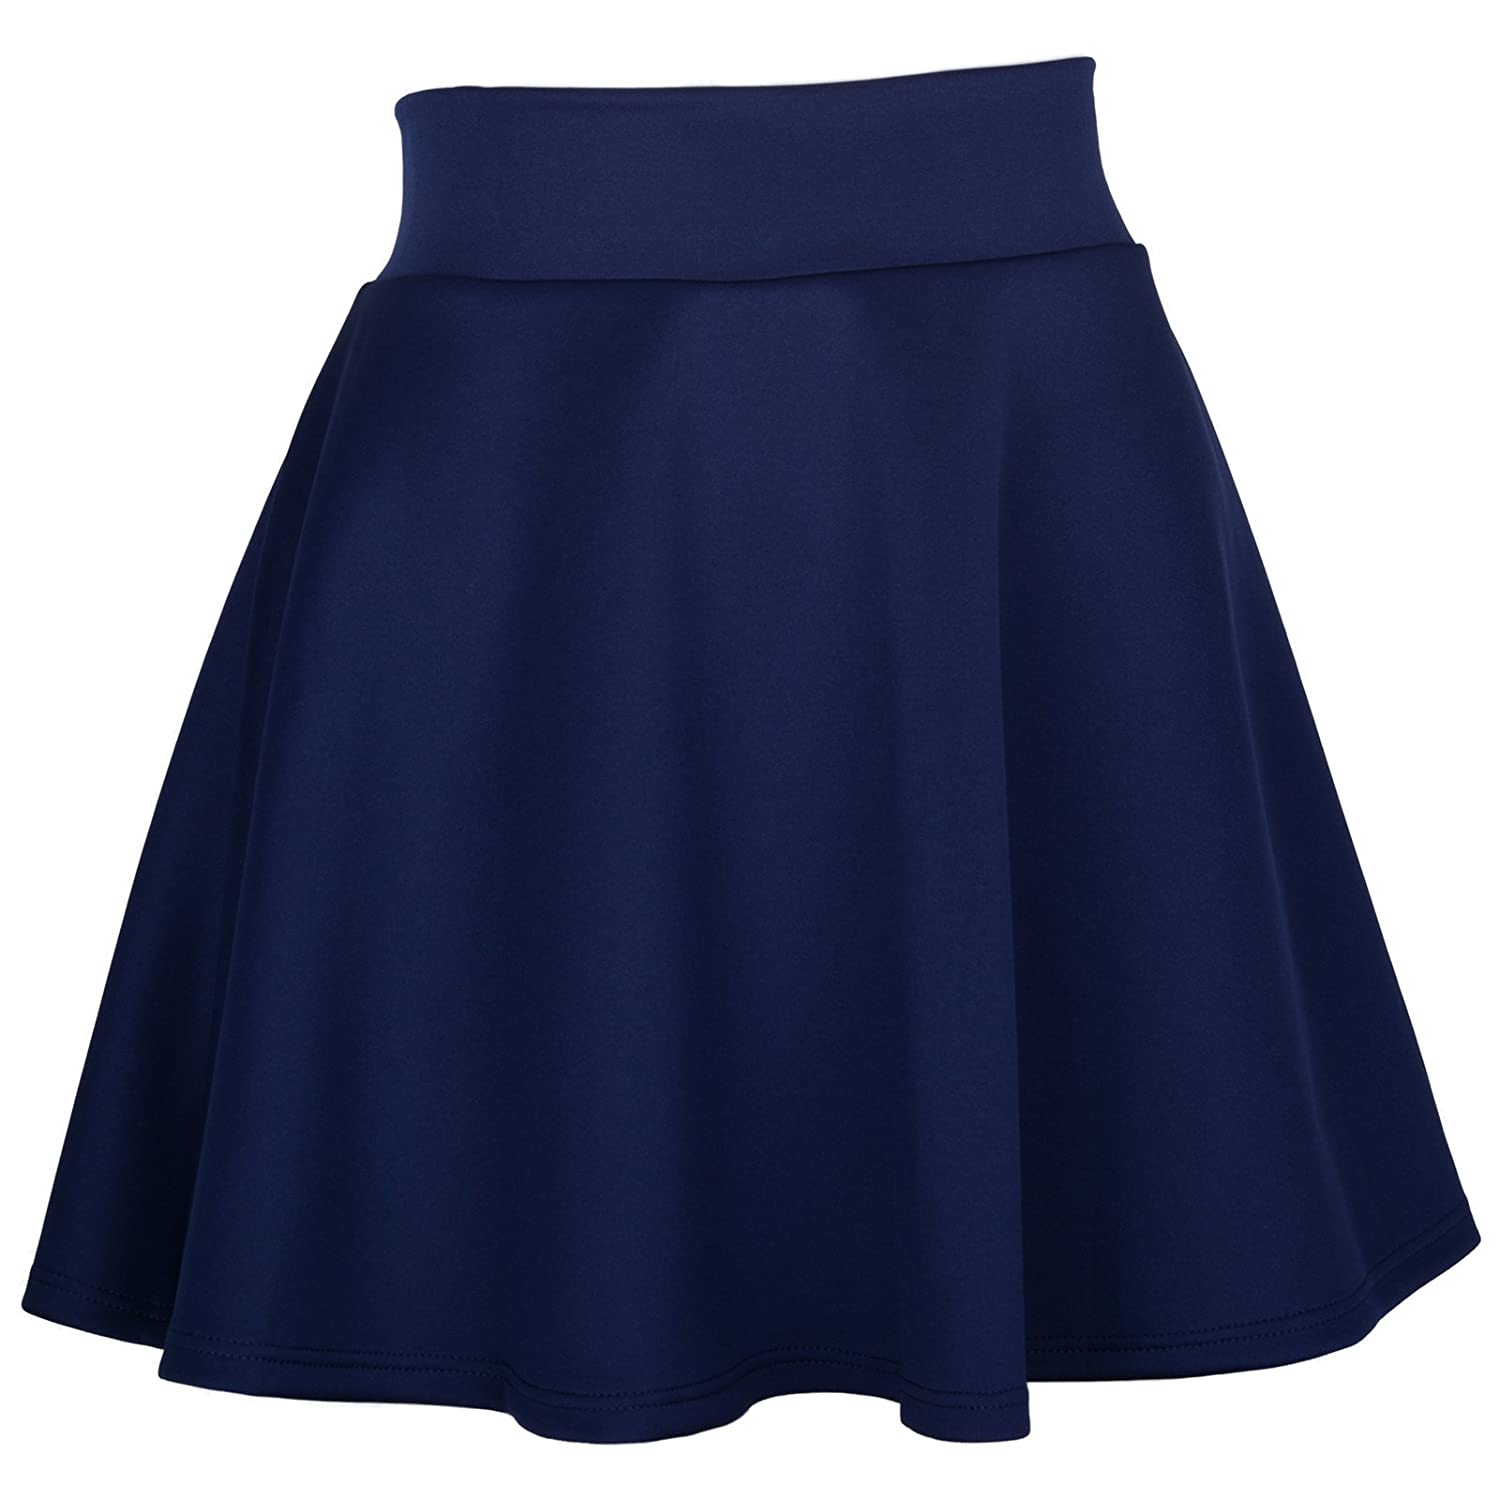 Womens Basic Solid Color Flared Skater Skirt at Amazon Women's ...